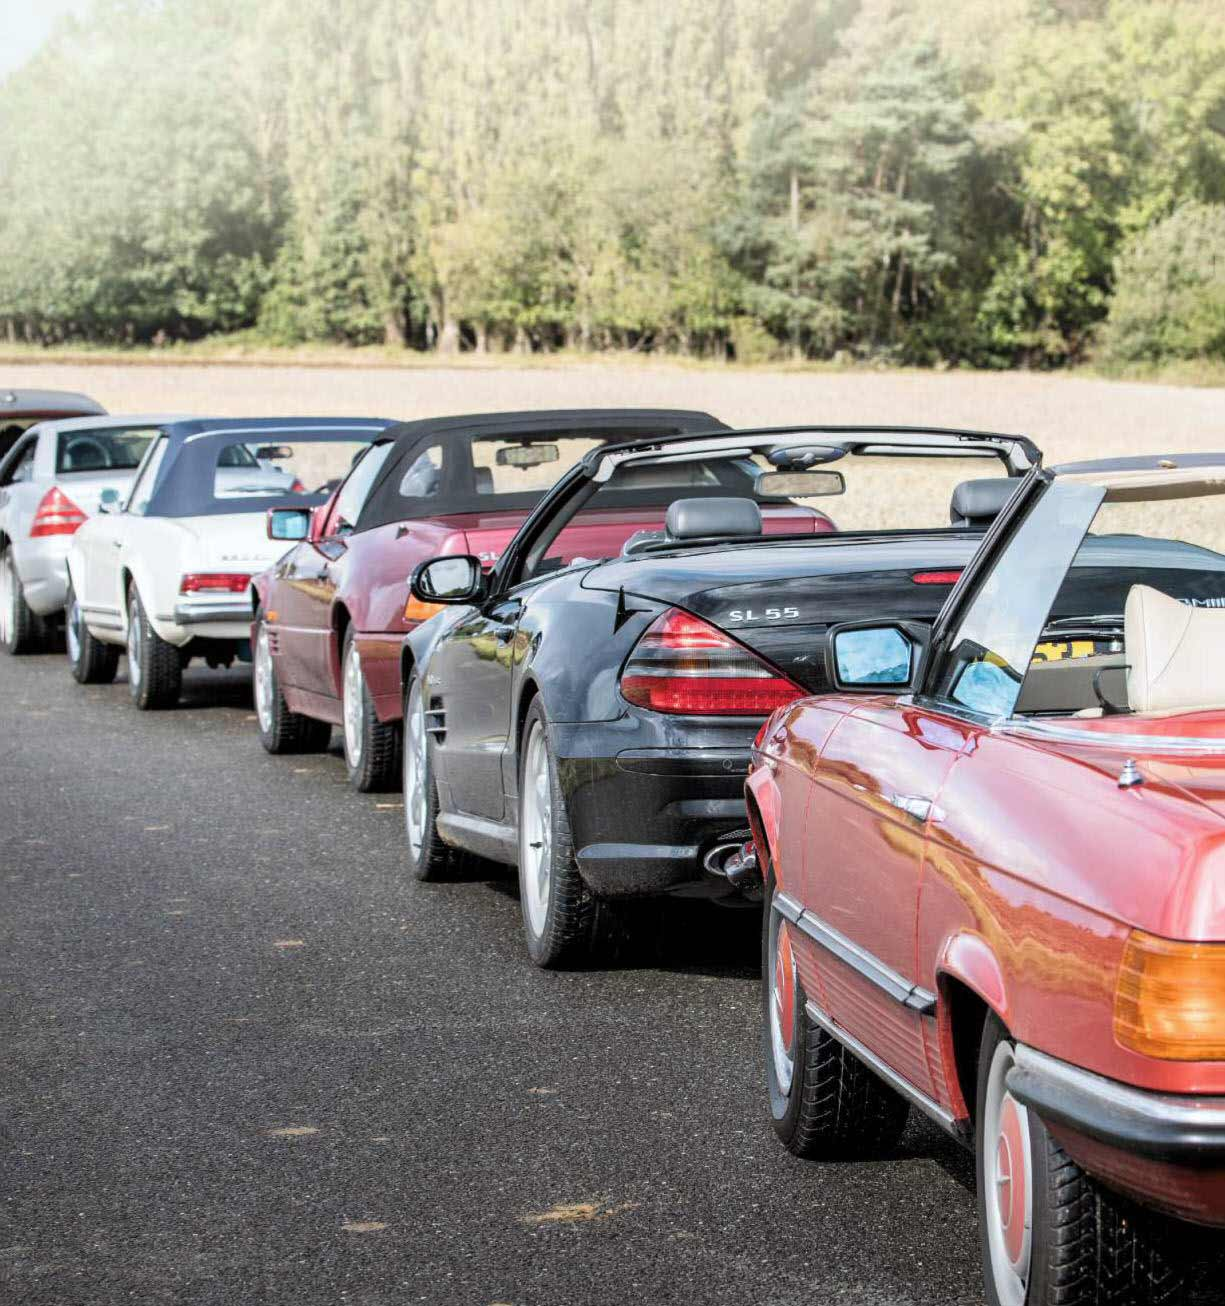 1965 Mercedes-Benz 230SL W113 vs. 1977 350SL R107, 1995 SL320 R129, 2000 SLK230K R170 and 2003 SL55 AMG R230